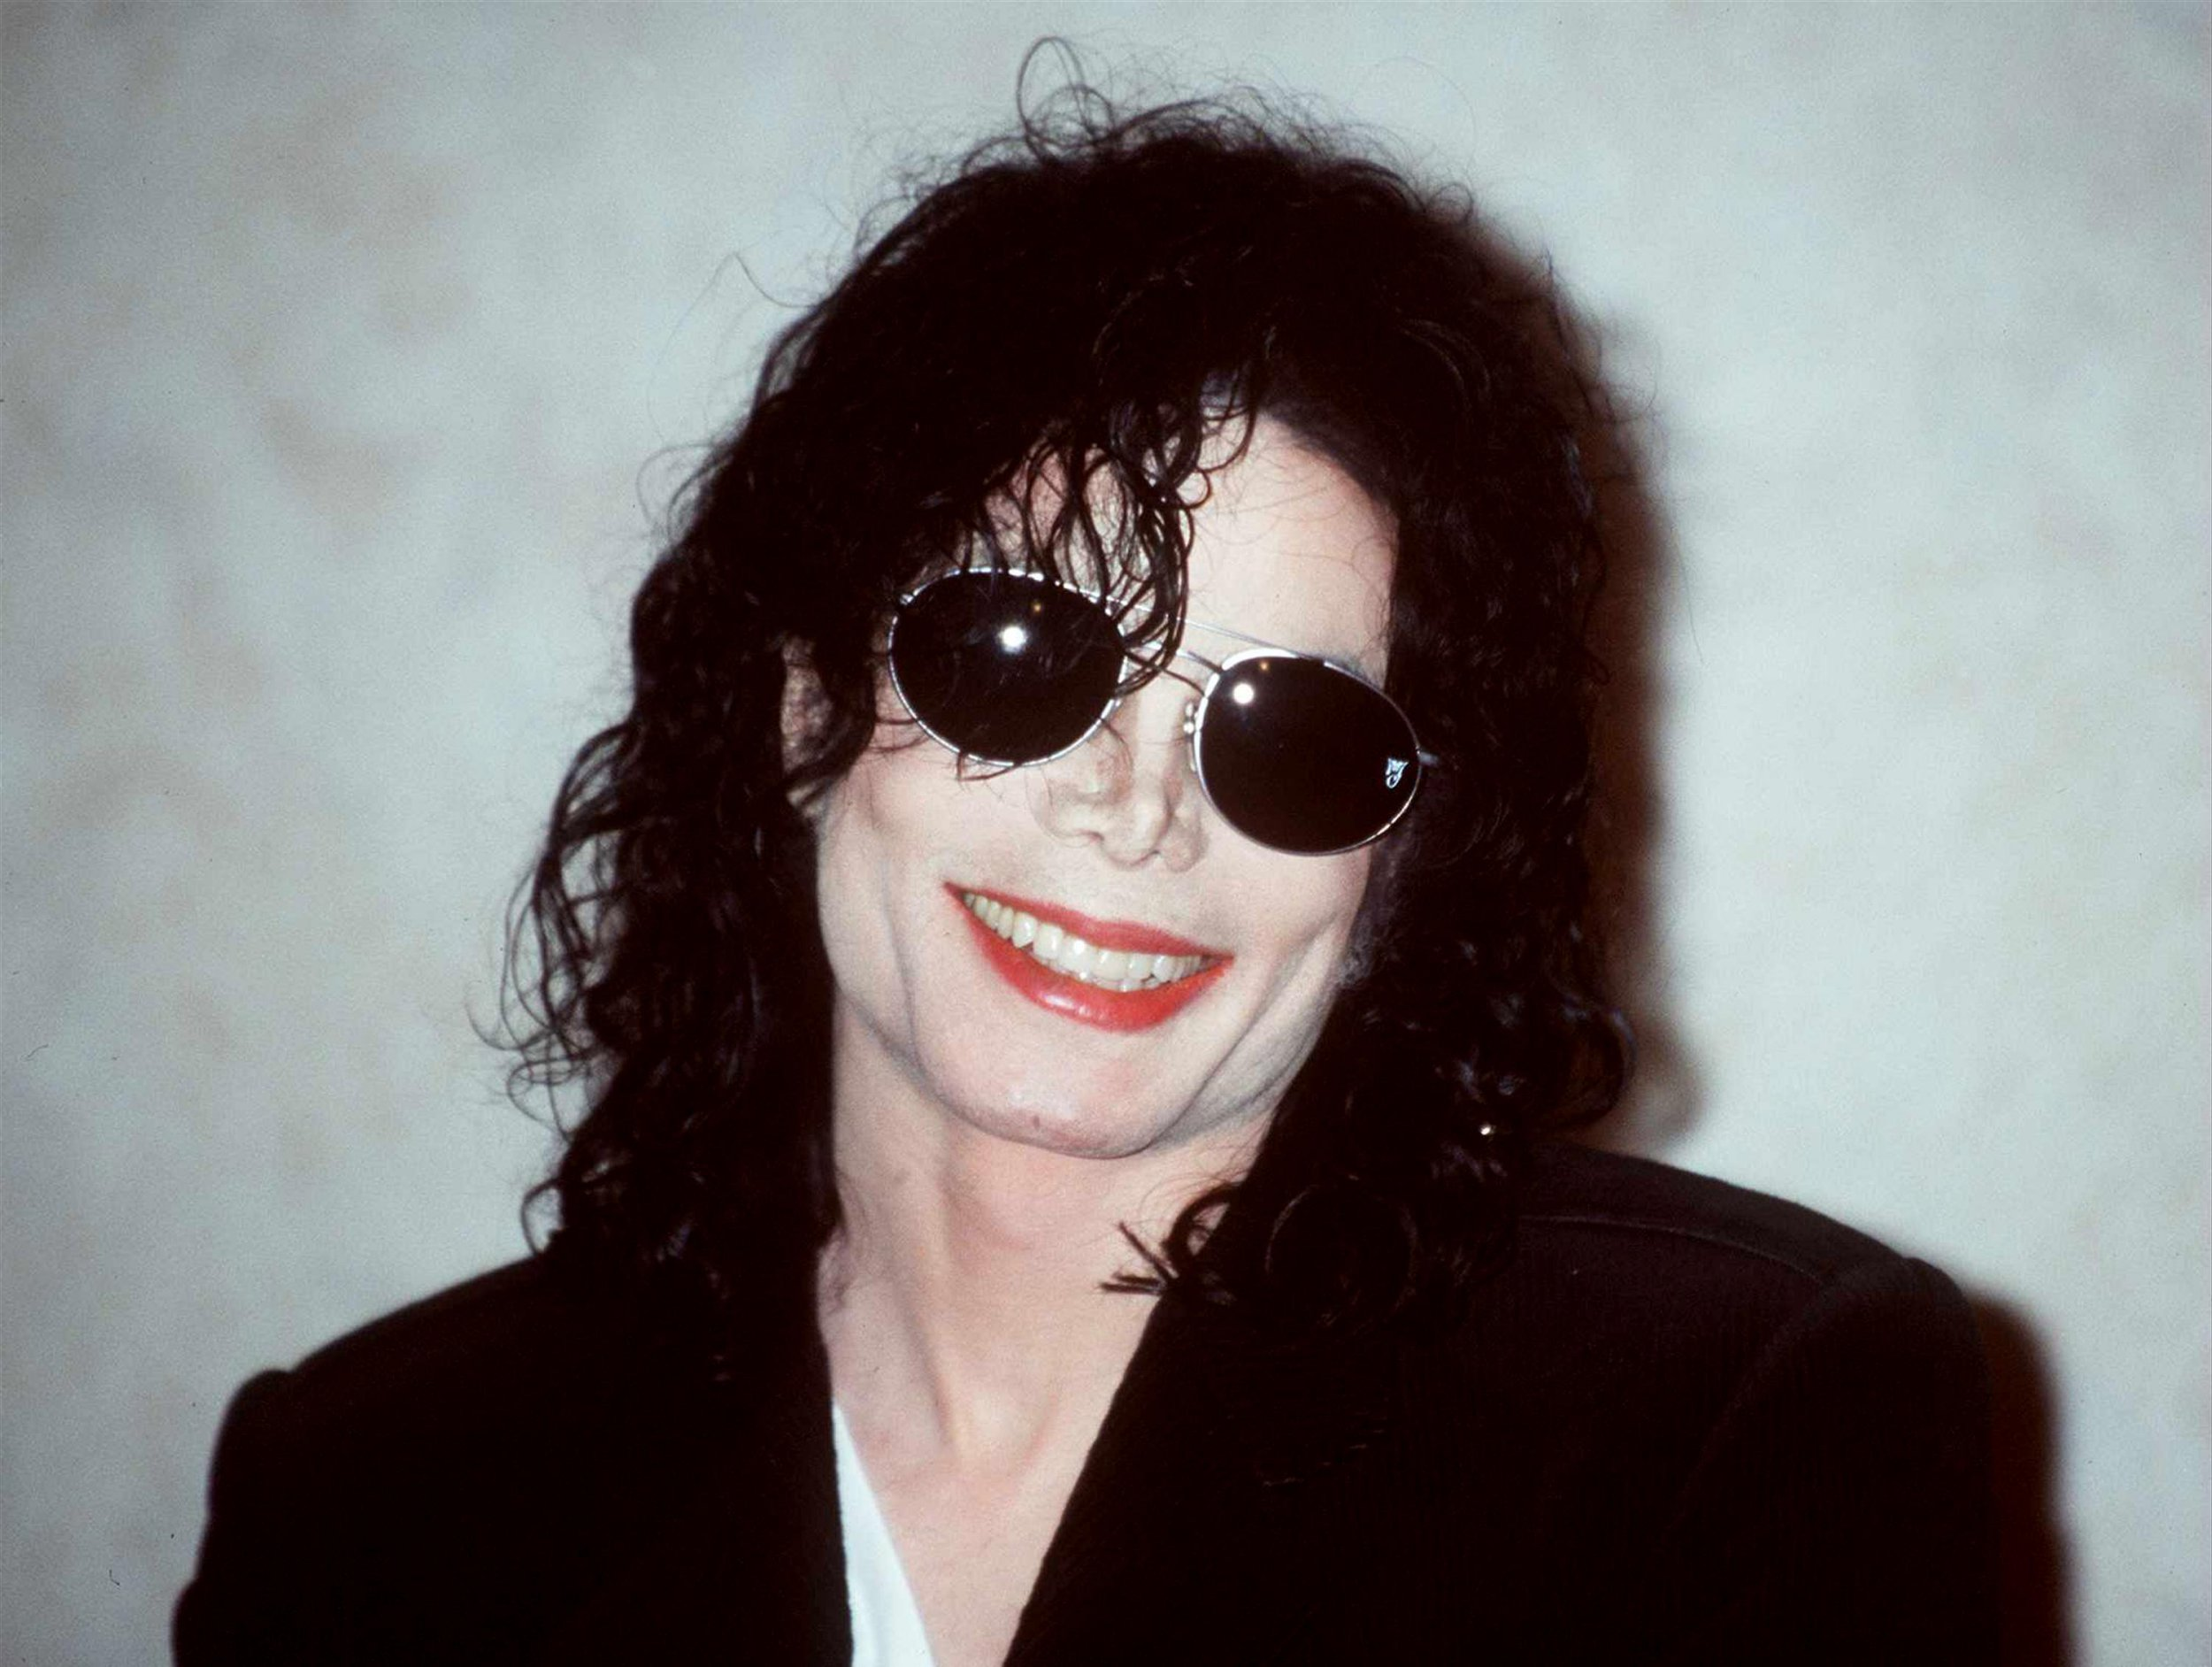 Michael Jackson's music re-enters charts following sexual abuse allegations – despite radio ban